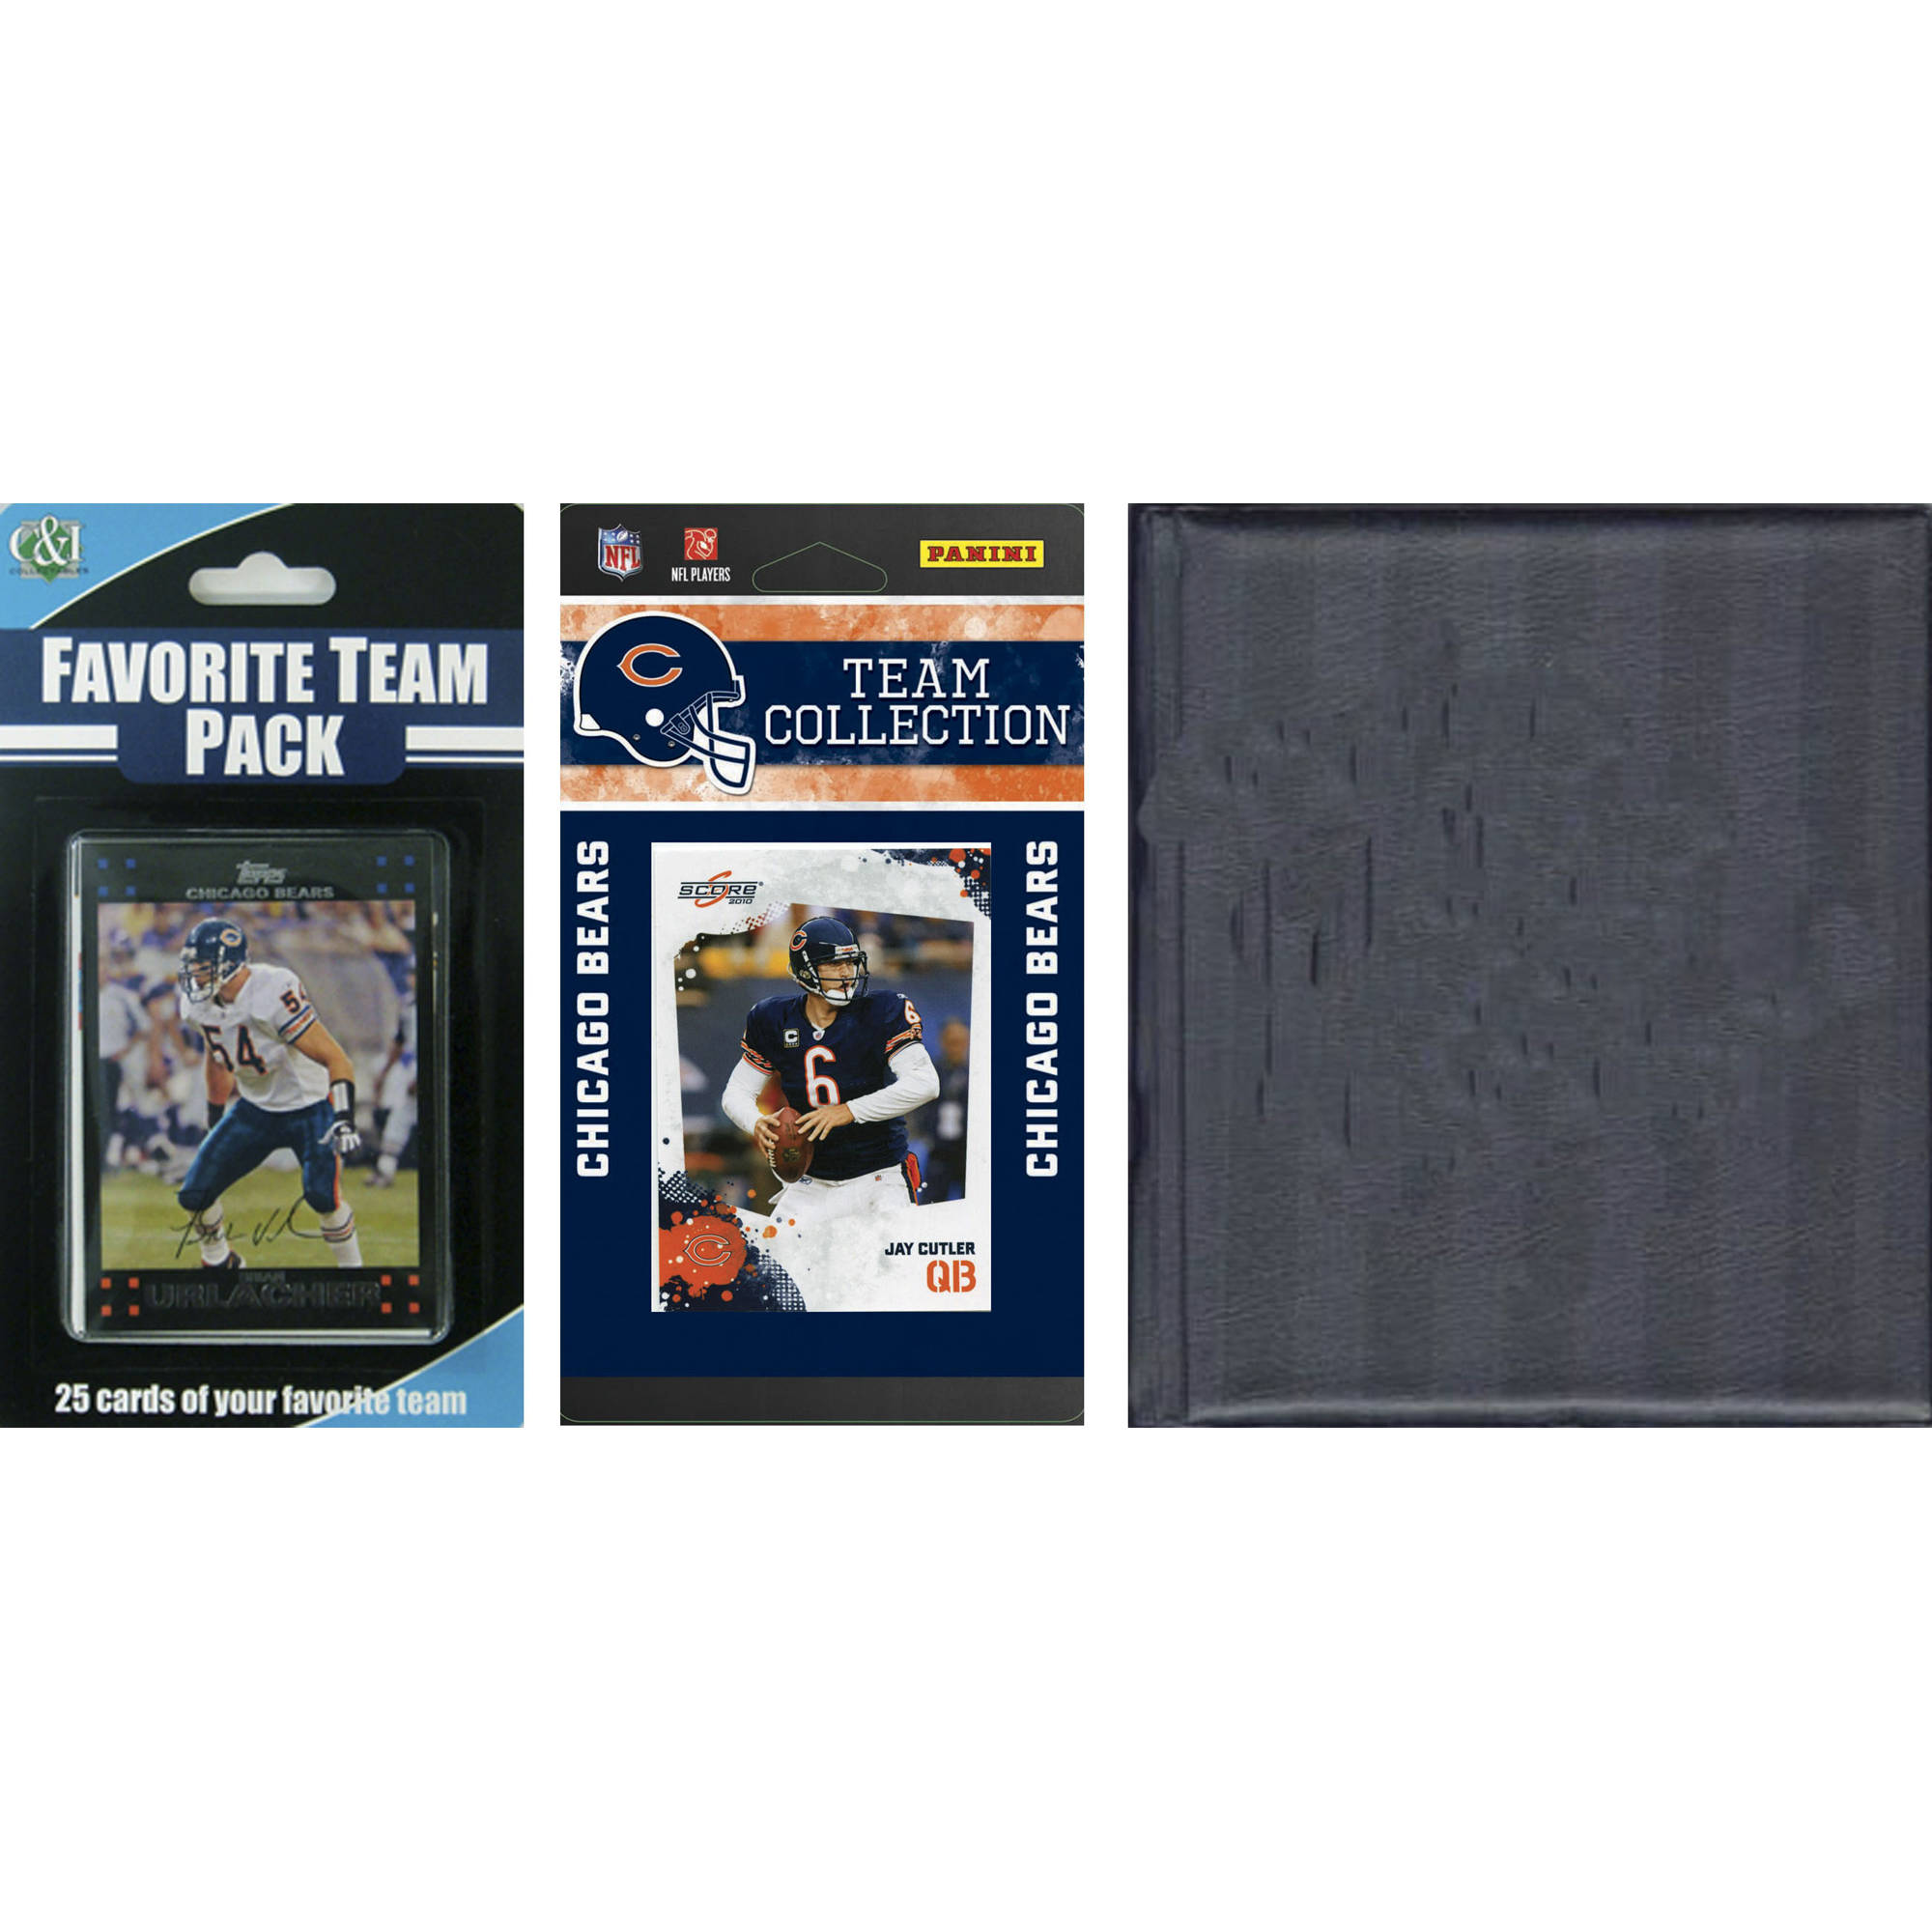 C&I Collectables NFL Chicago Bears Licensed 2010 Score Team Set and Favorite Player Trading Card Pack Plus Storage Album